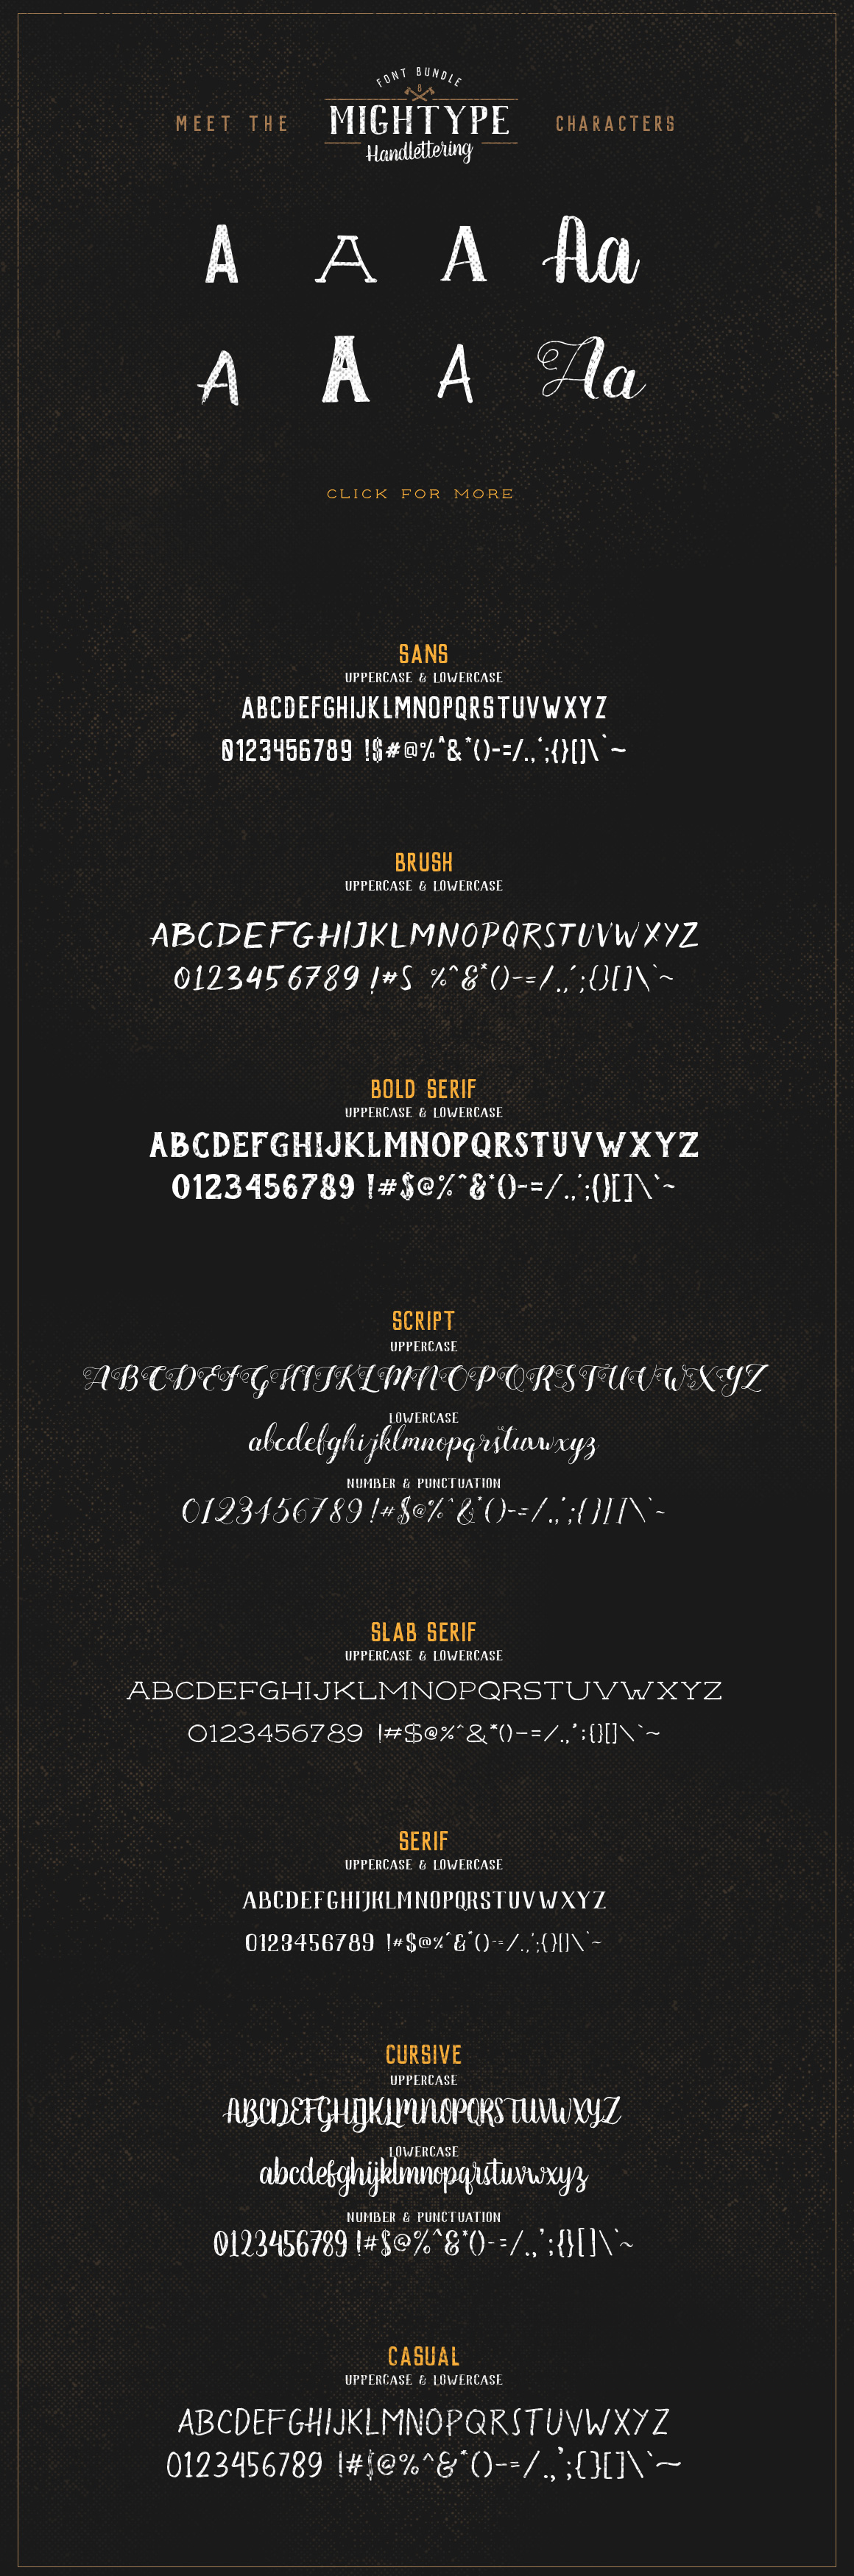 Mightype Handlettering Font Pack example image 7